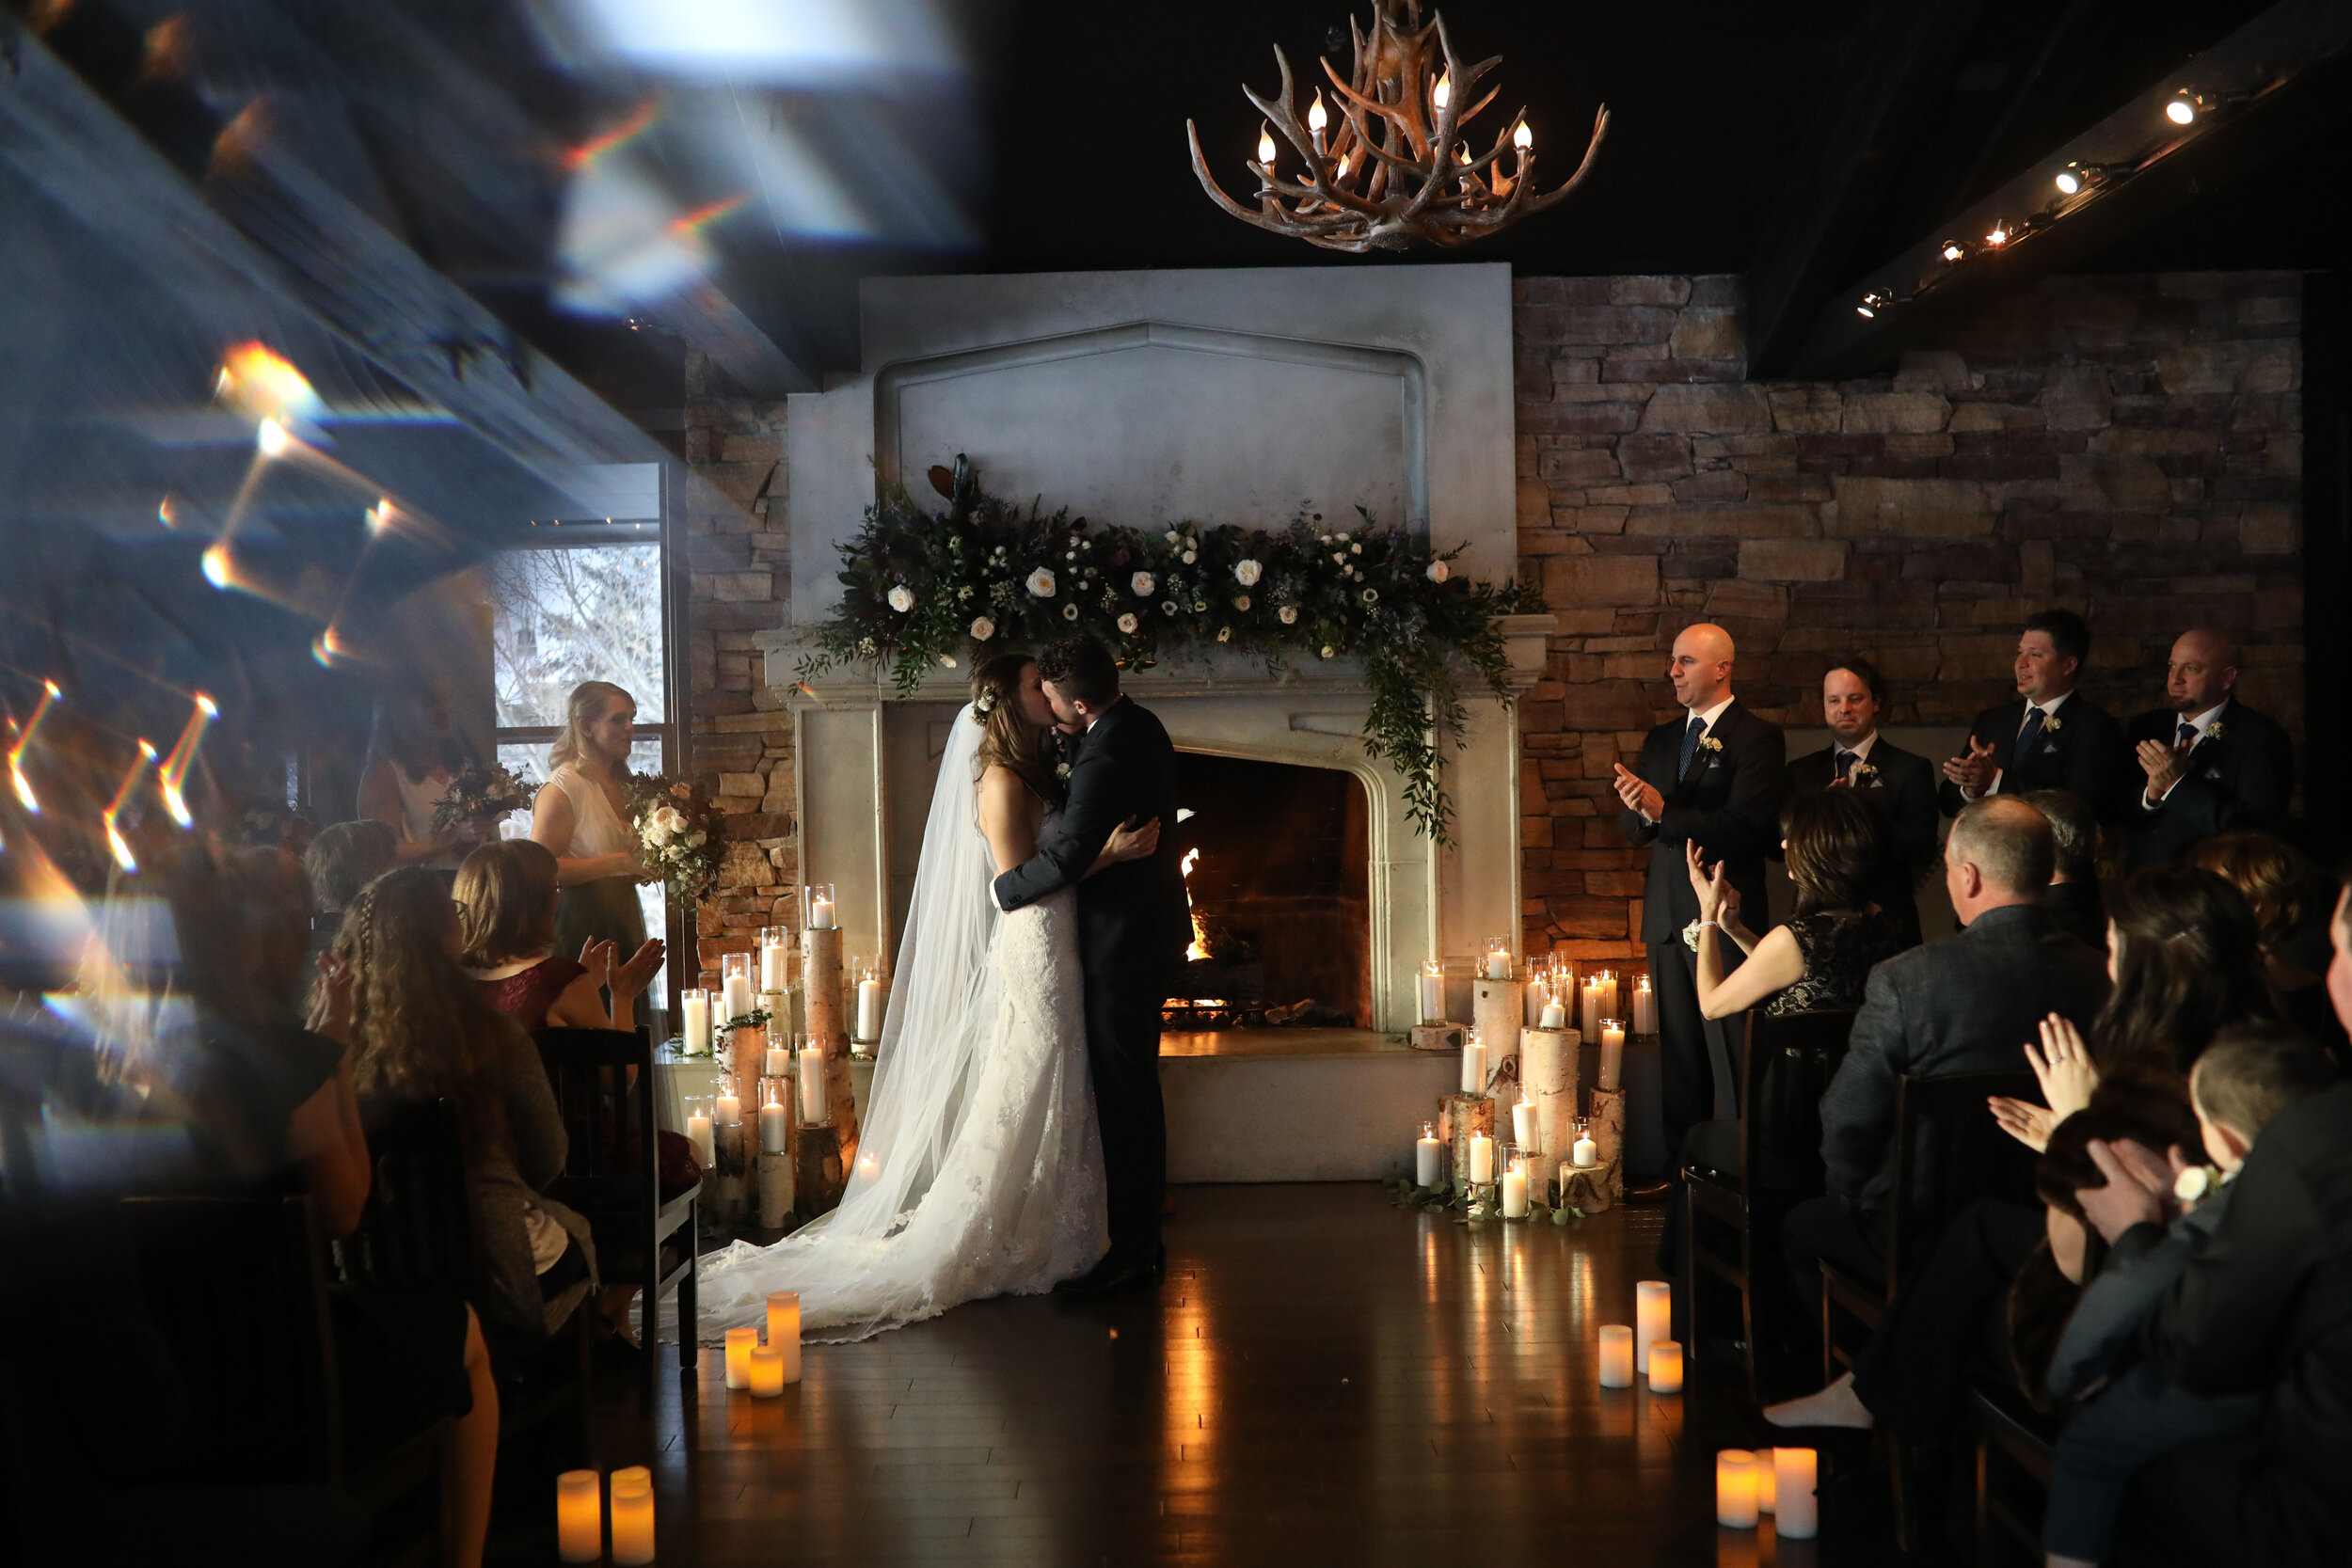 The Wedding Day - Full Day Photography11 Maximum Consecutive HoursHis & Her Getting Ready Images, Ceremony Documenting, Family & Wedding Party Formal Portraits, Reception Candids and Décor Images & Creative Night Photoshoot for the Bride & Groom.Reception Lighting Assistant